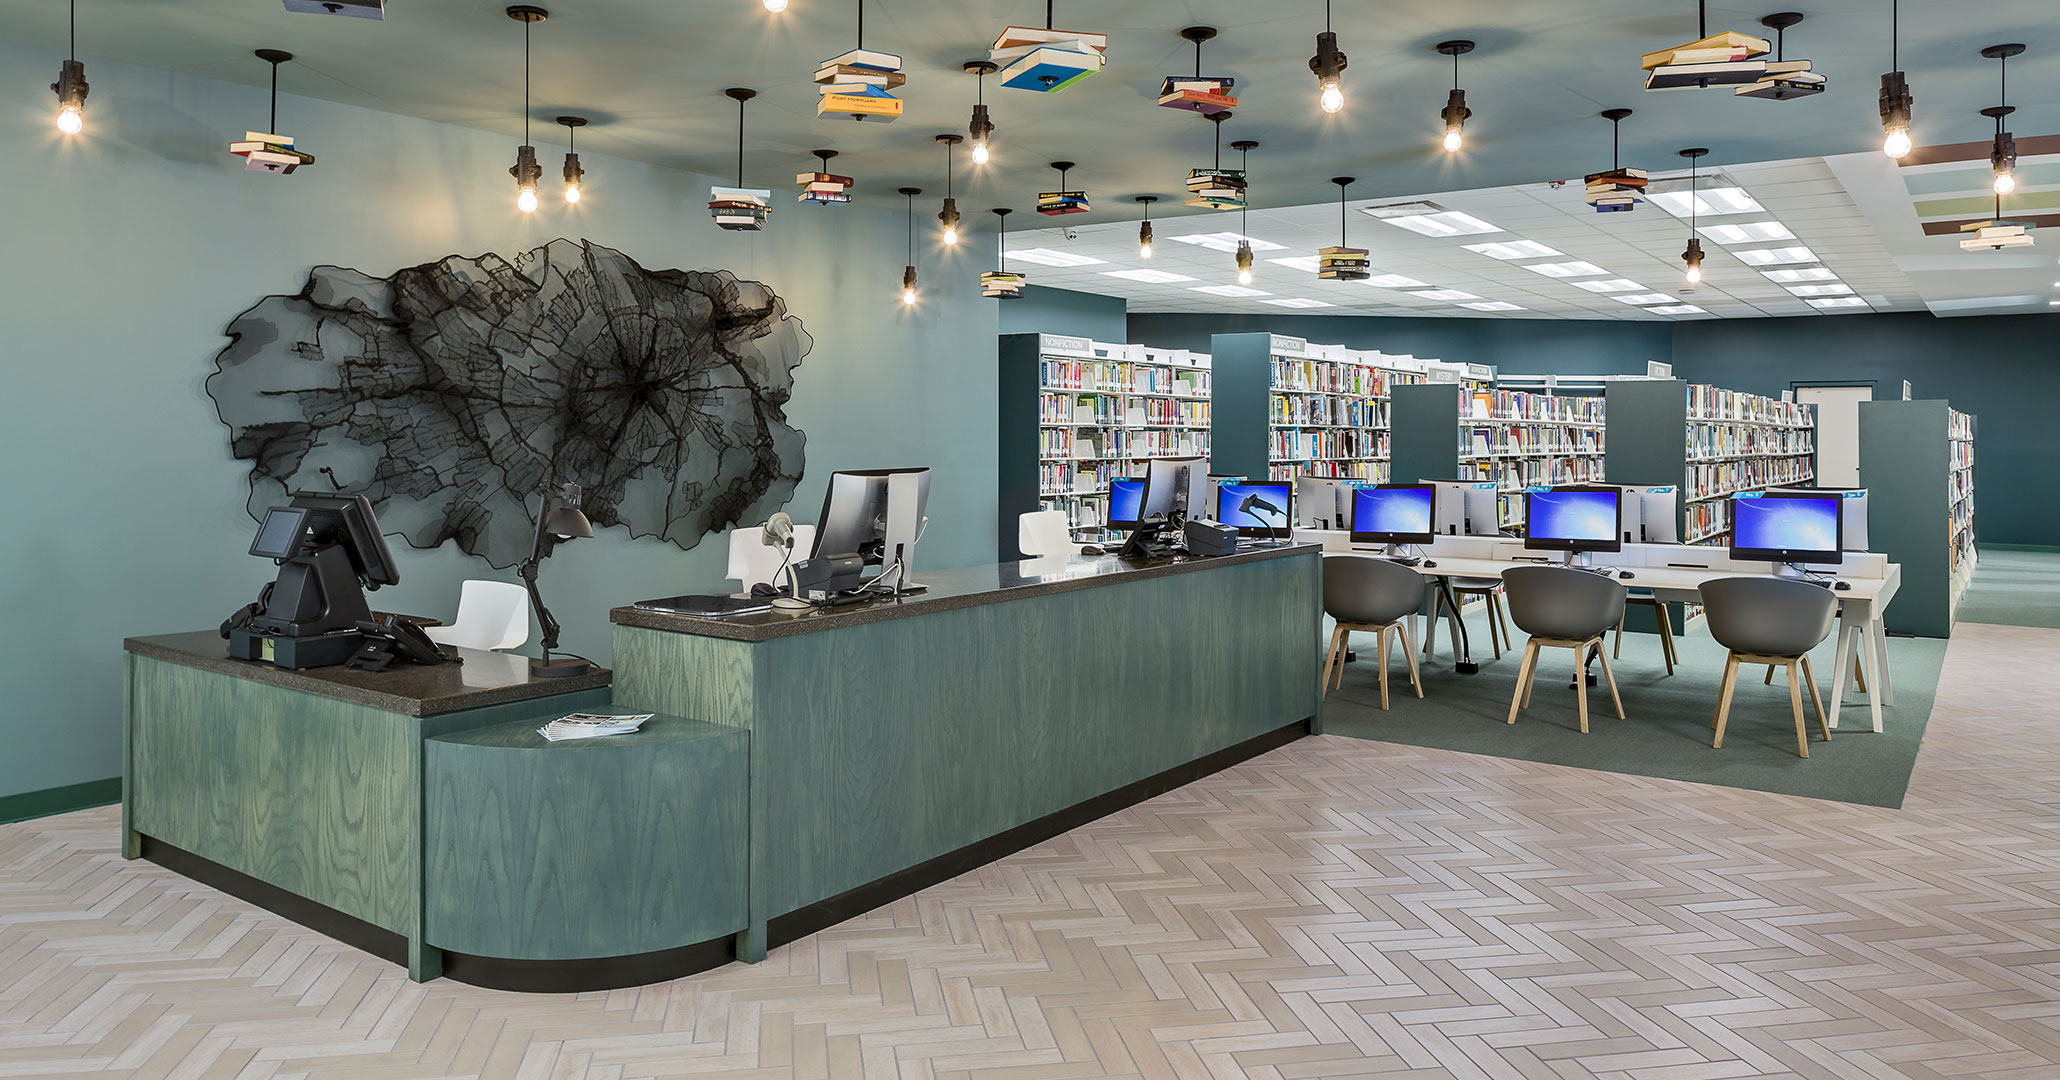 Richland County Library worked with Boudreaux architects to design impactful entryways.